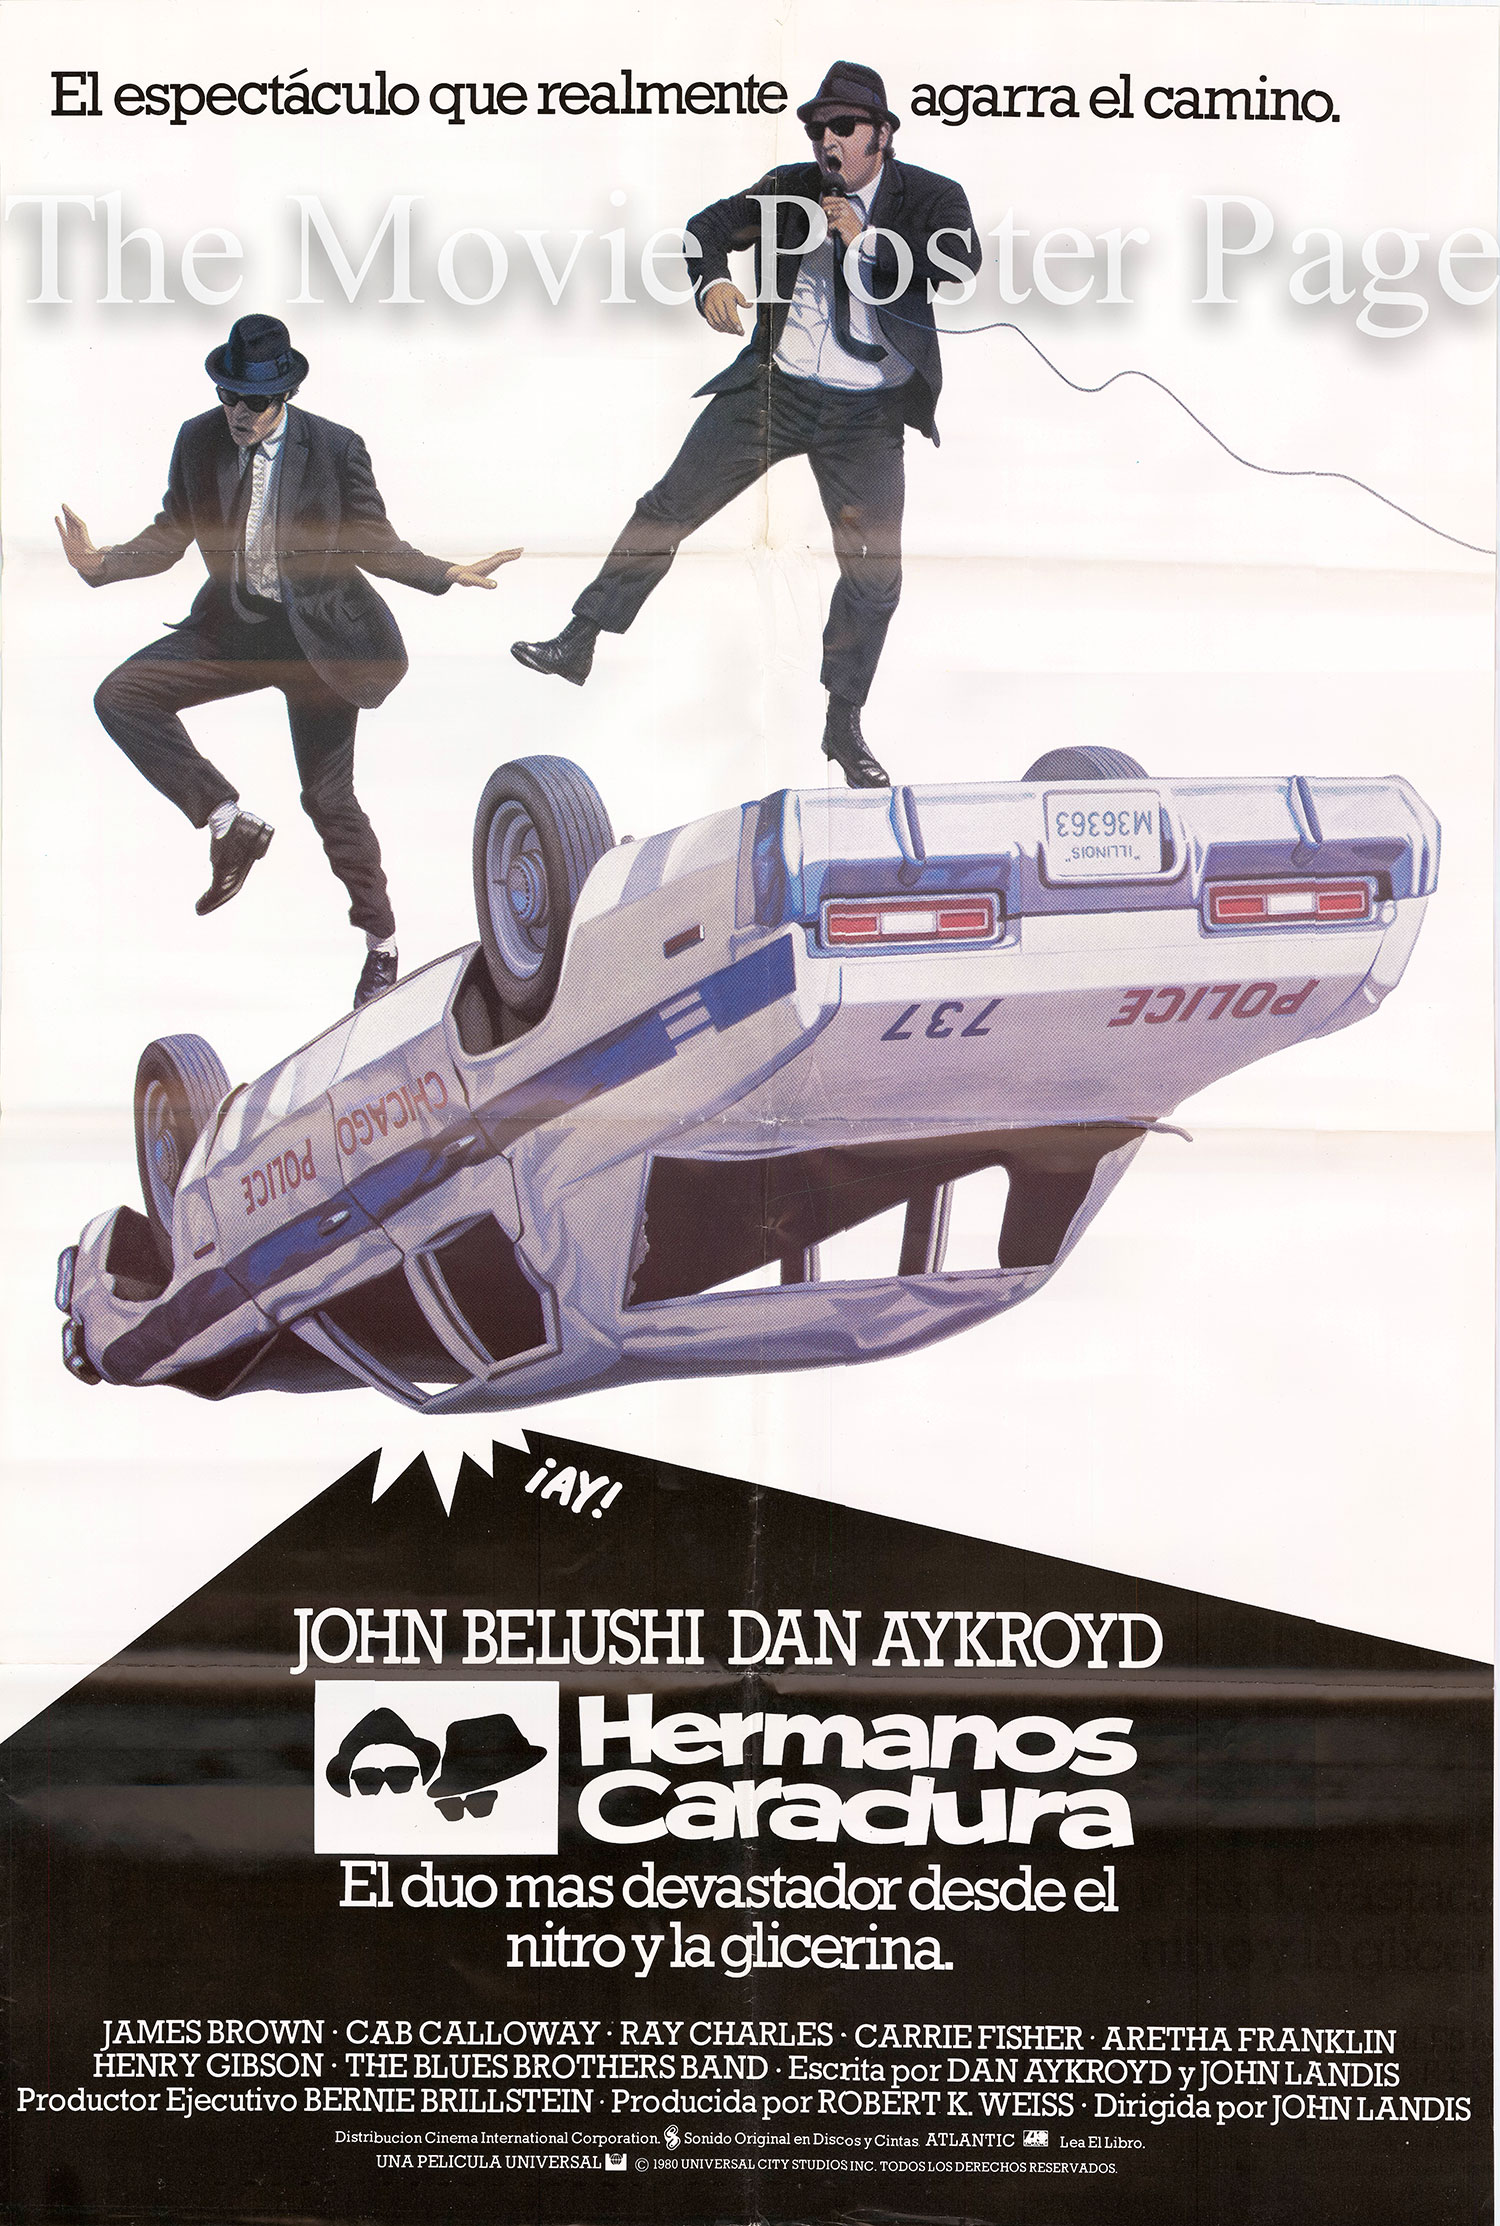 Pictured is a Spanish promotional poster for the 1980 John Landis film the Blues Brothers starring John Belushi and Dan Aykroyd.